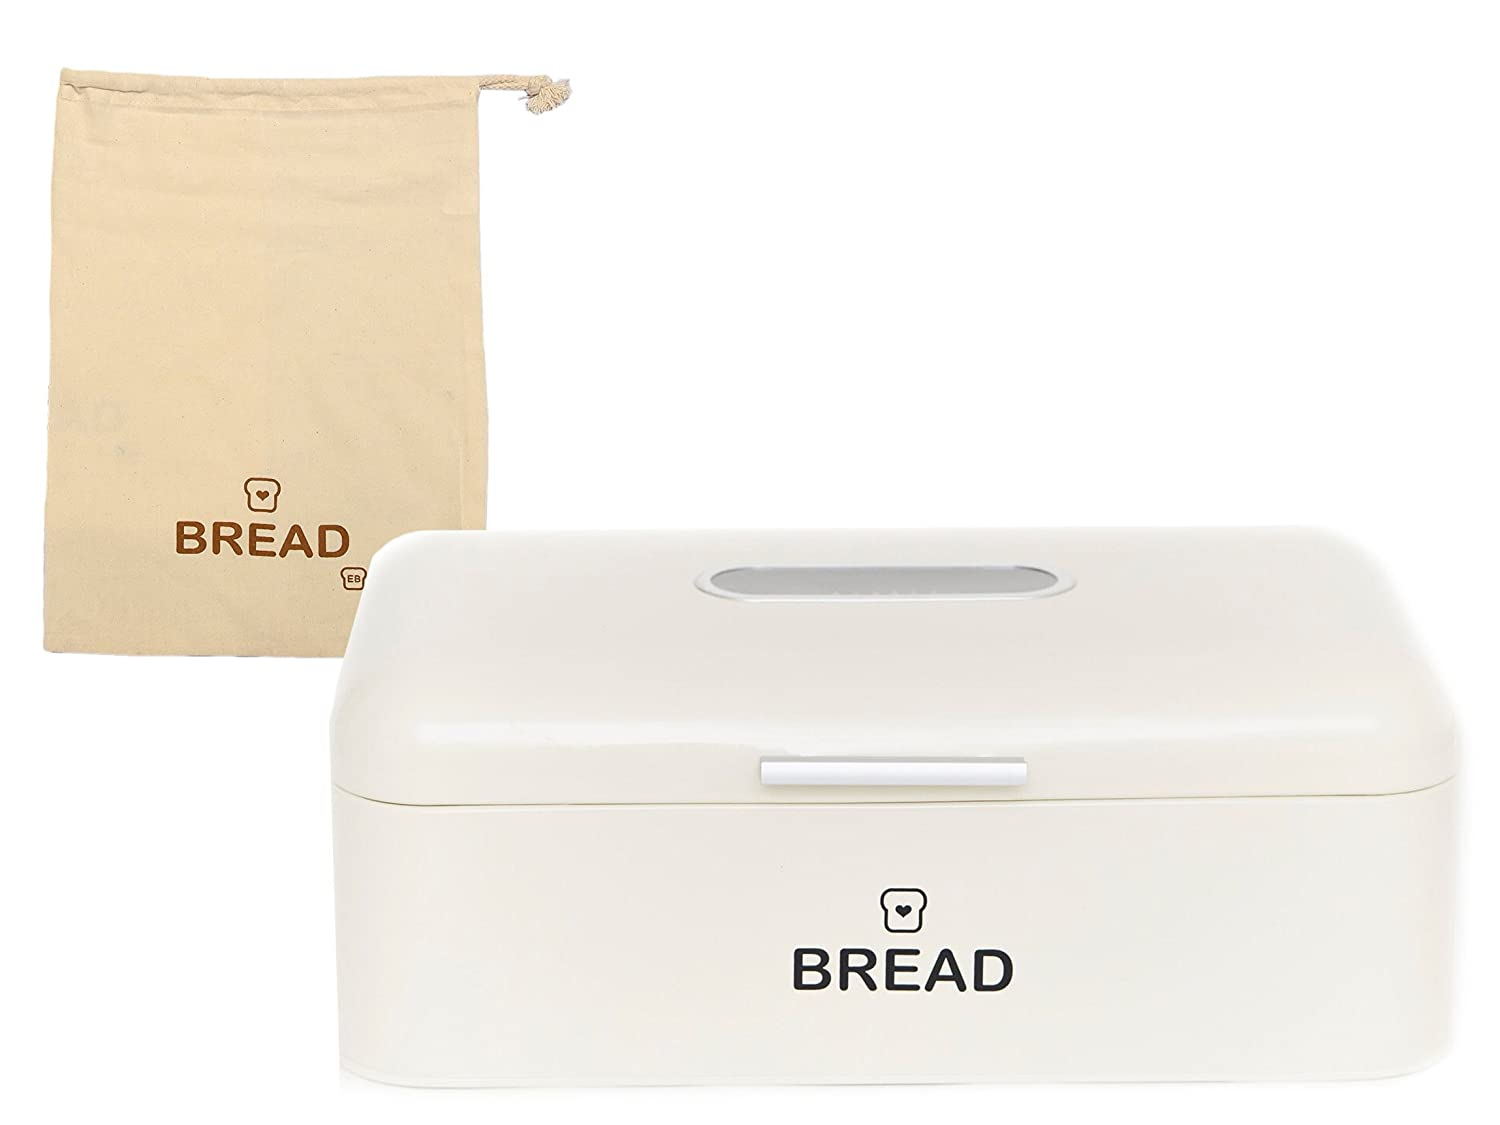 E&B Vintage Bread Box for Kitchen Stainless Steel Metal with Viewing Window Plus Free Bread Bag, Large Bread, Loaves, Pasgtires Bin Storage, Cream